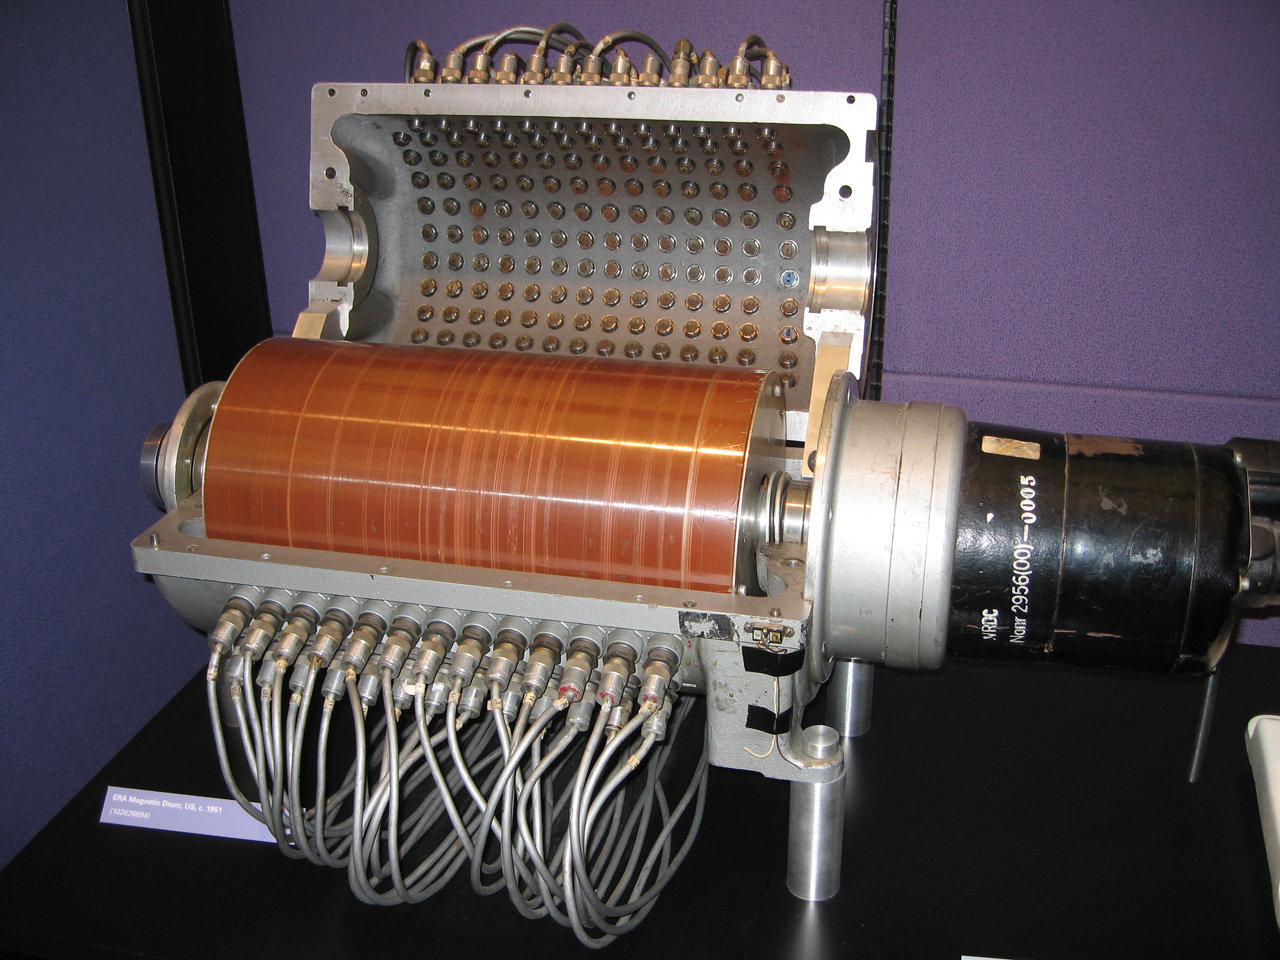 ERA_Magnetic_Drum,_US,_c._1951_-_Computer_History_Museum_-_Mountain_View,_California.jpg